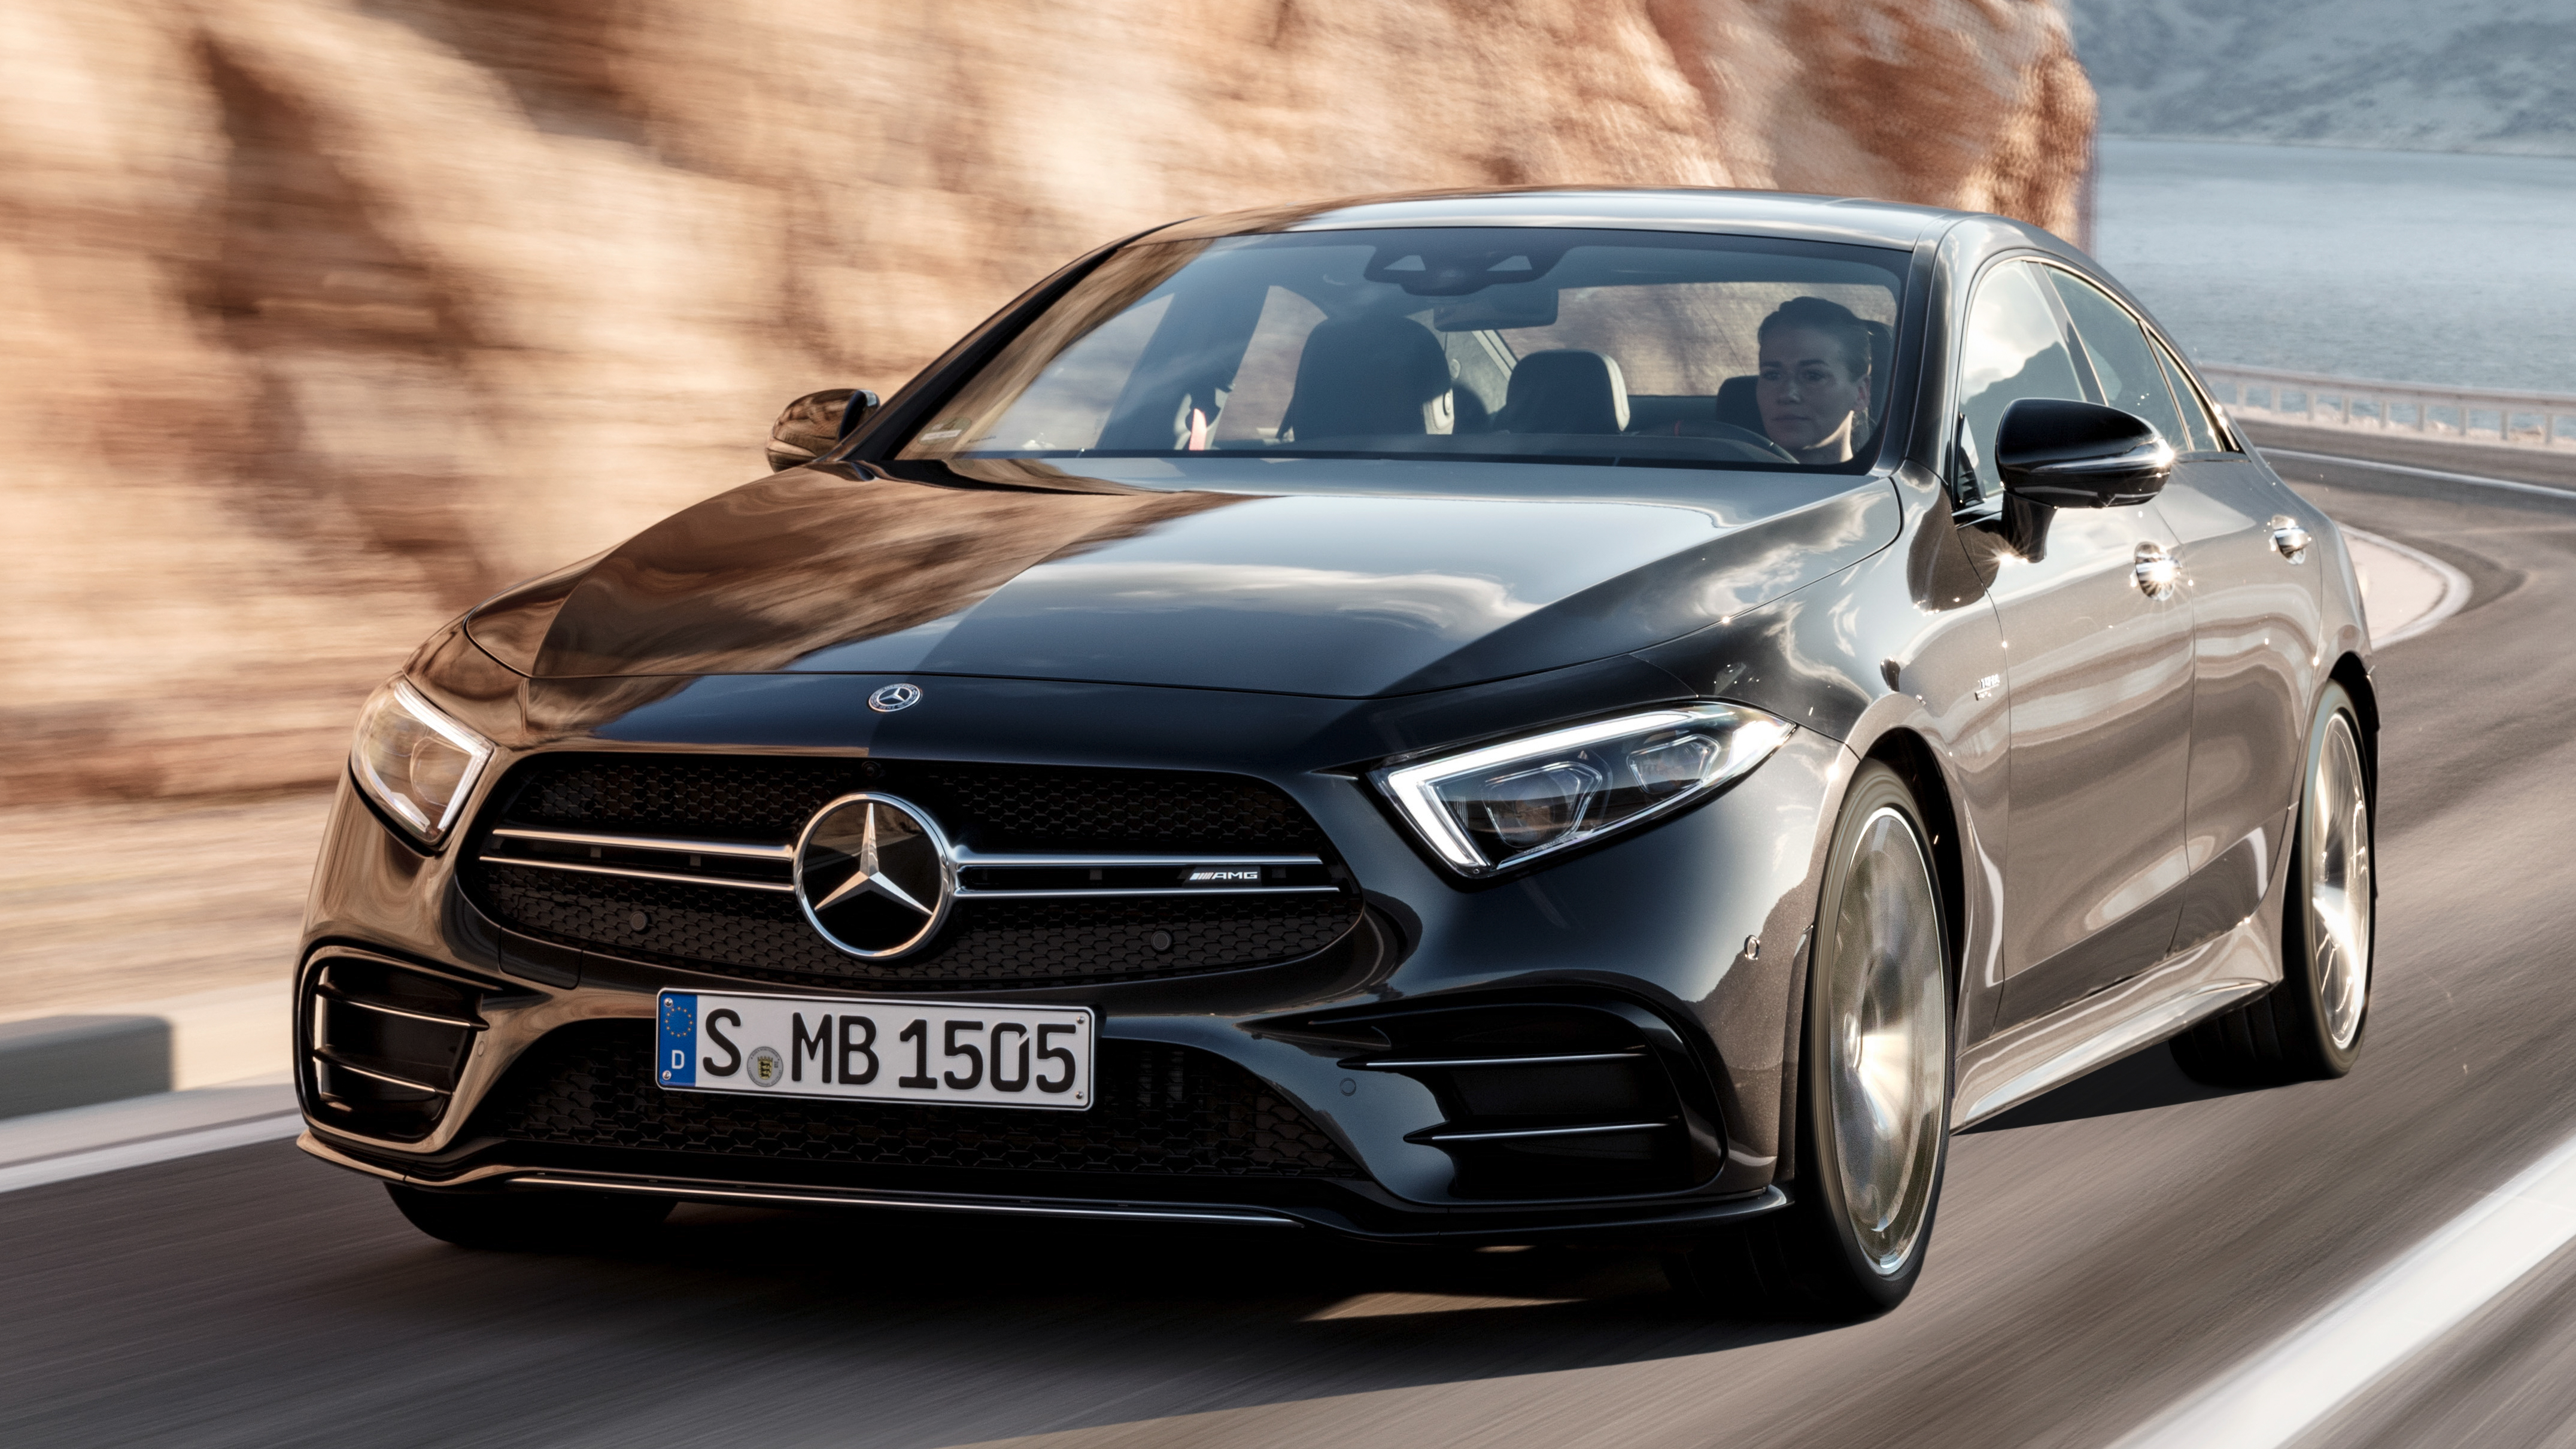 Mercedes amg cls53 e53 coupe and cabriolet first amg eq for Capital mercedes benz bmw